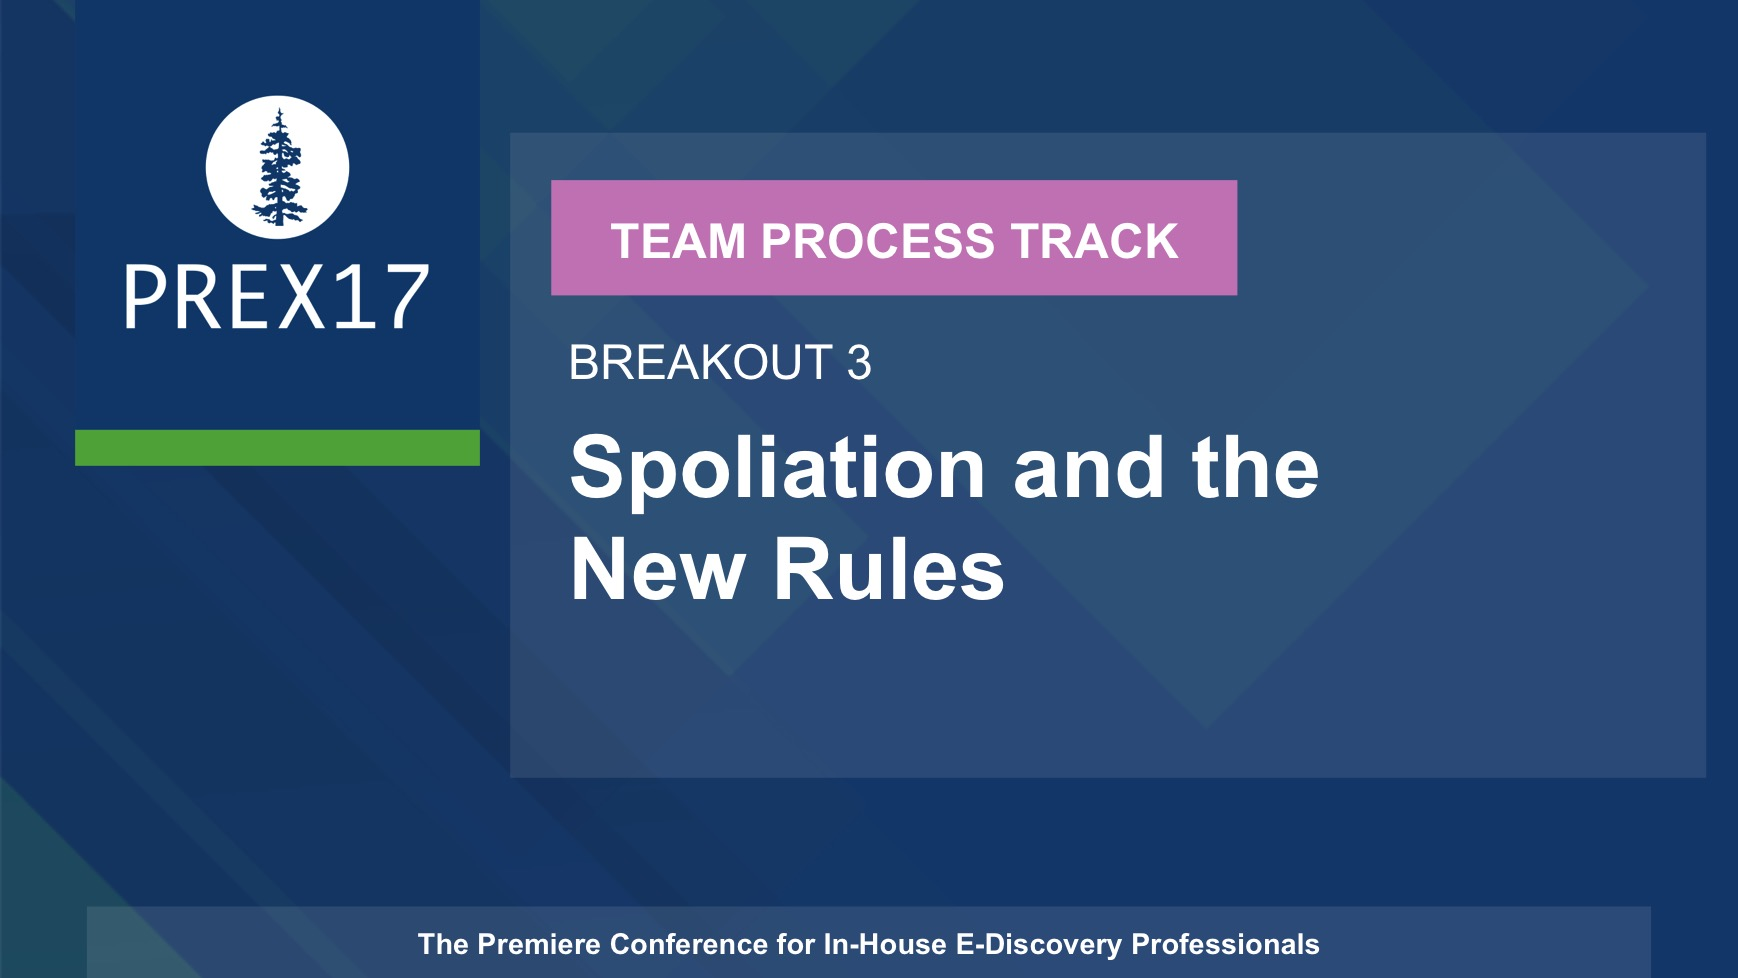 (Breakout 3 - Team Process) Spoliation and the New Rules